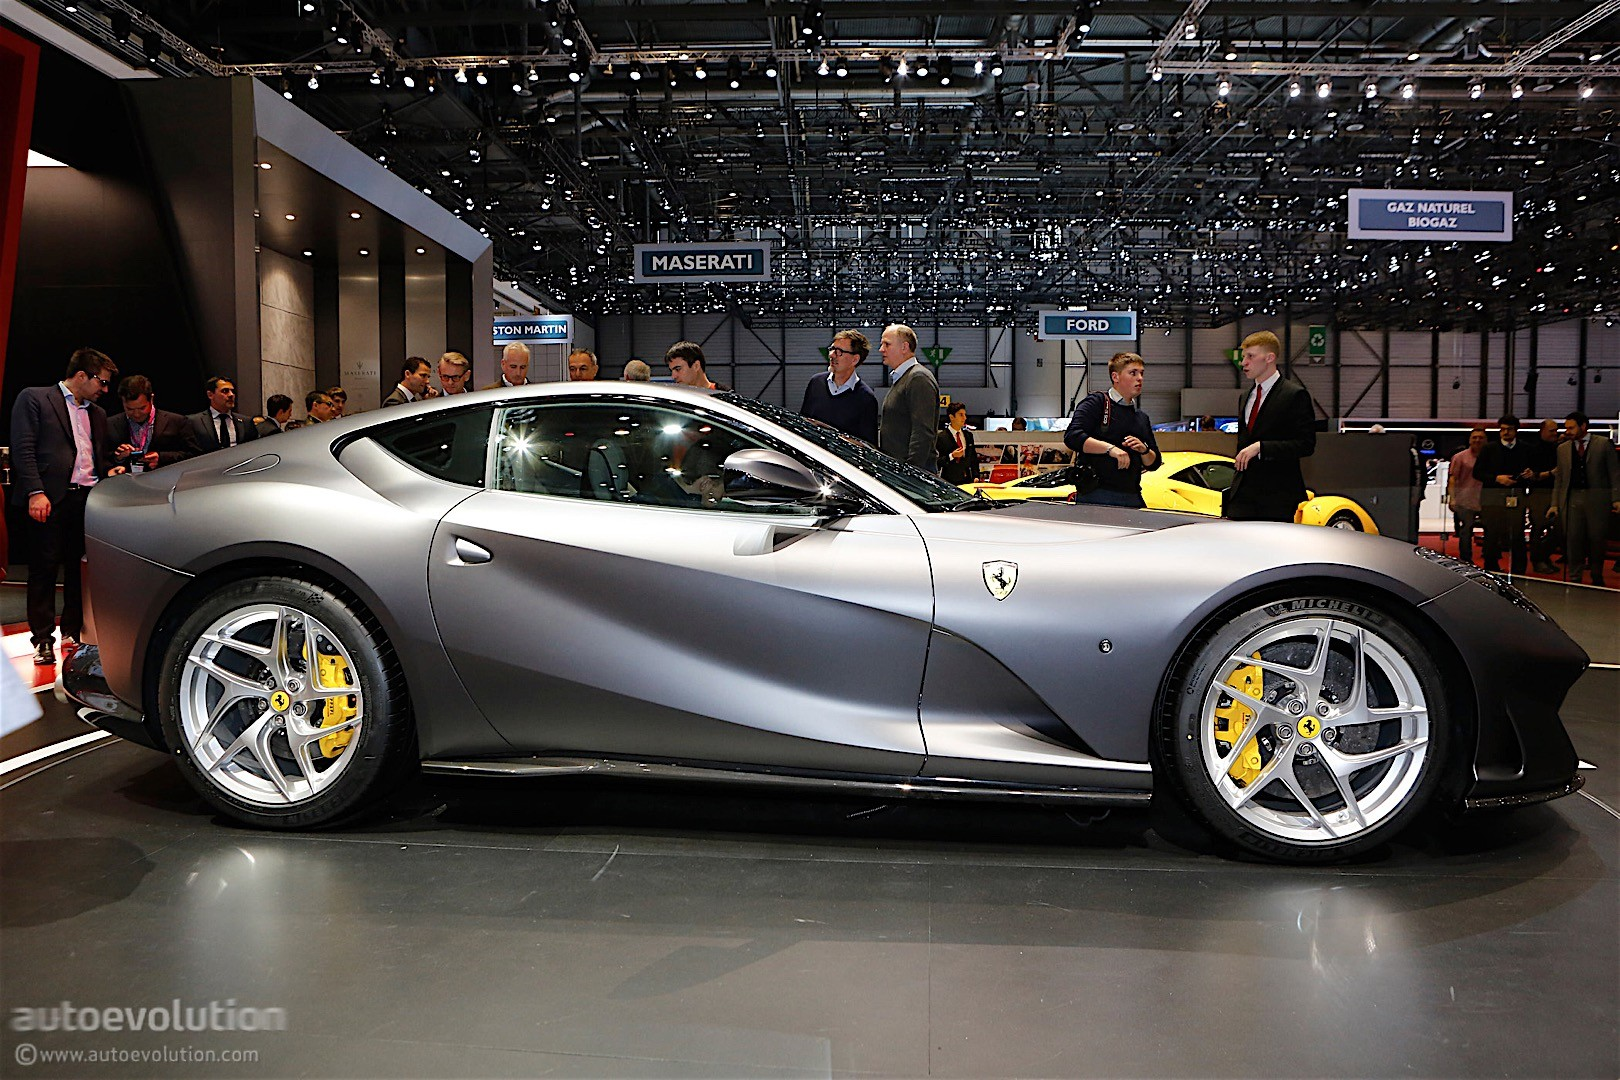 Ferrari 812 Superfast Aero Engine And Dynamics Detailed In Official Videos Autoevolution